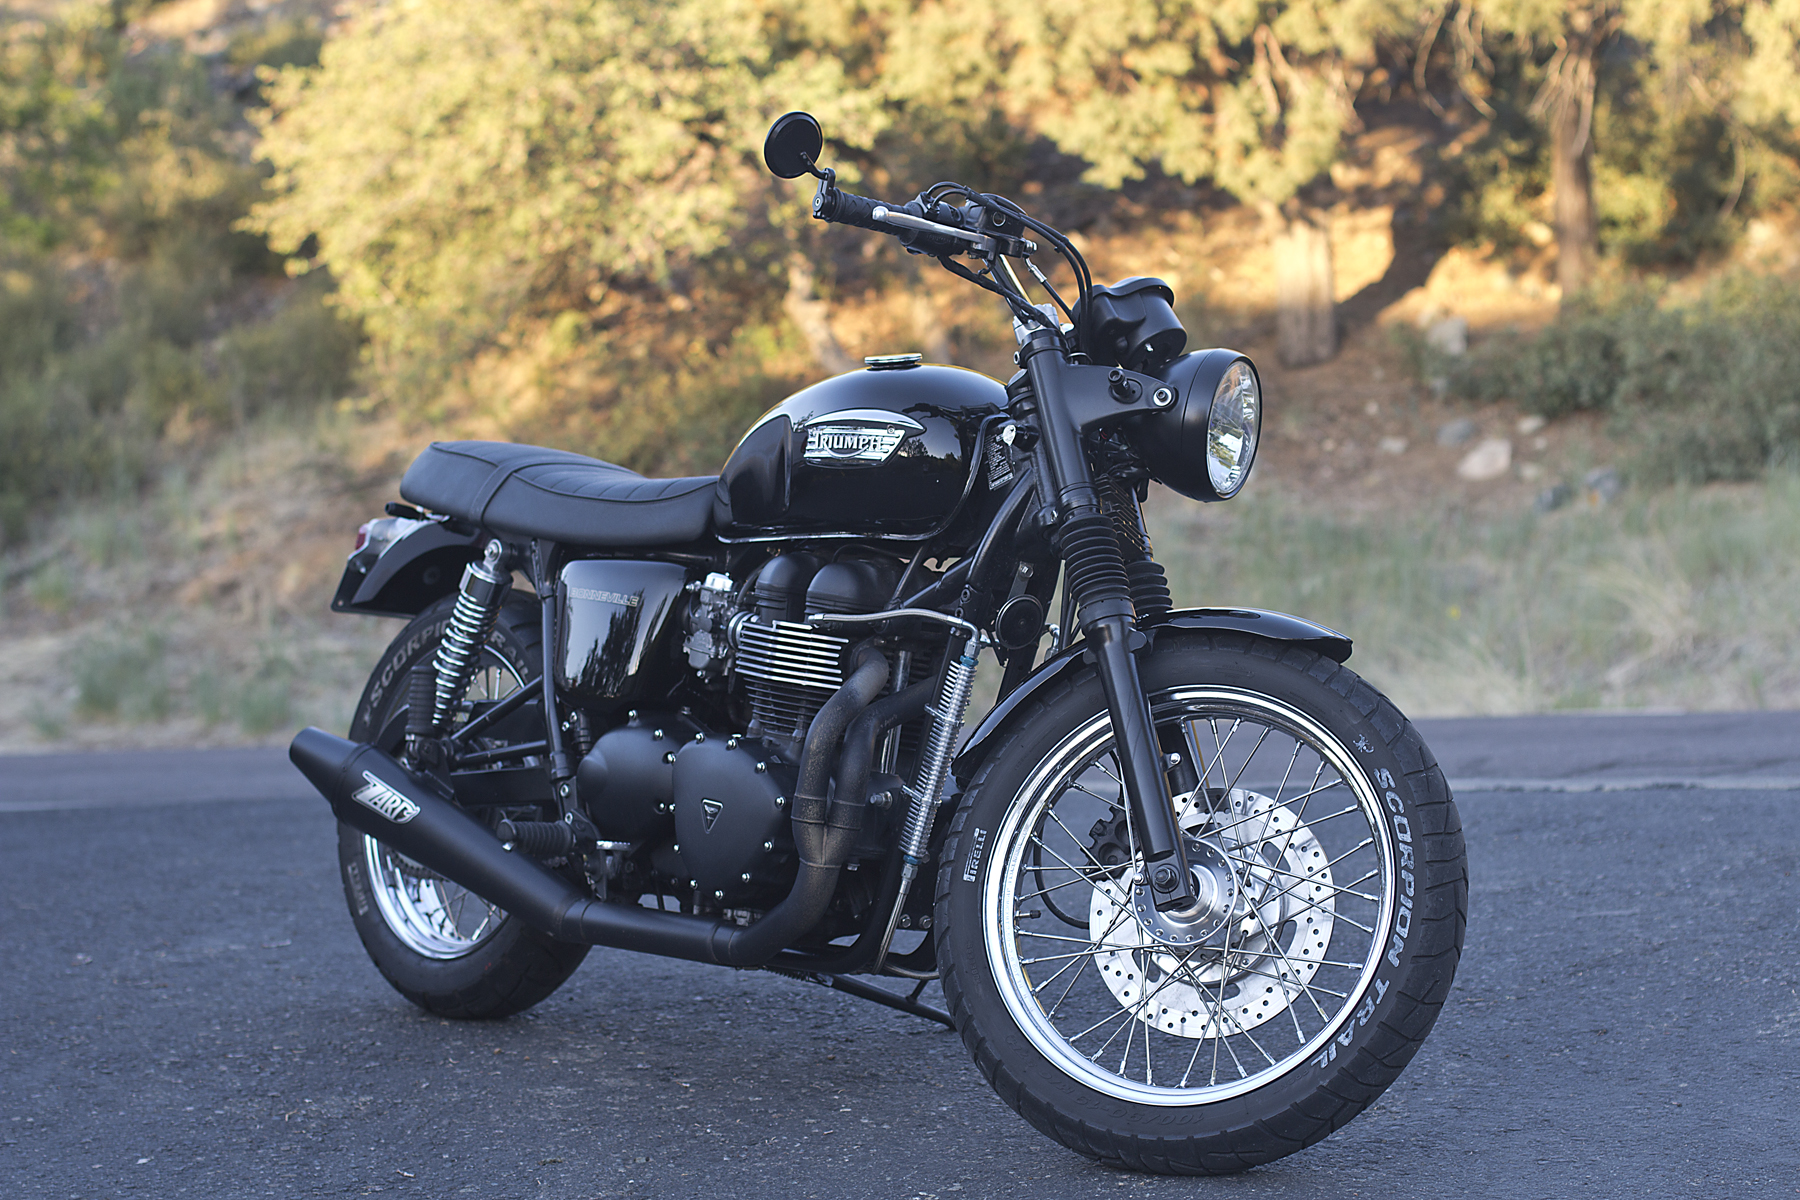 2003 Triumph Bonneville 800  Pics  Specs And Information